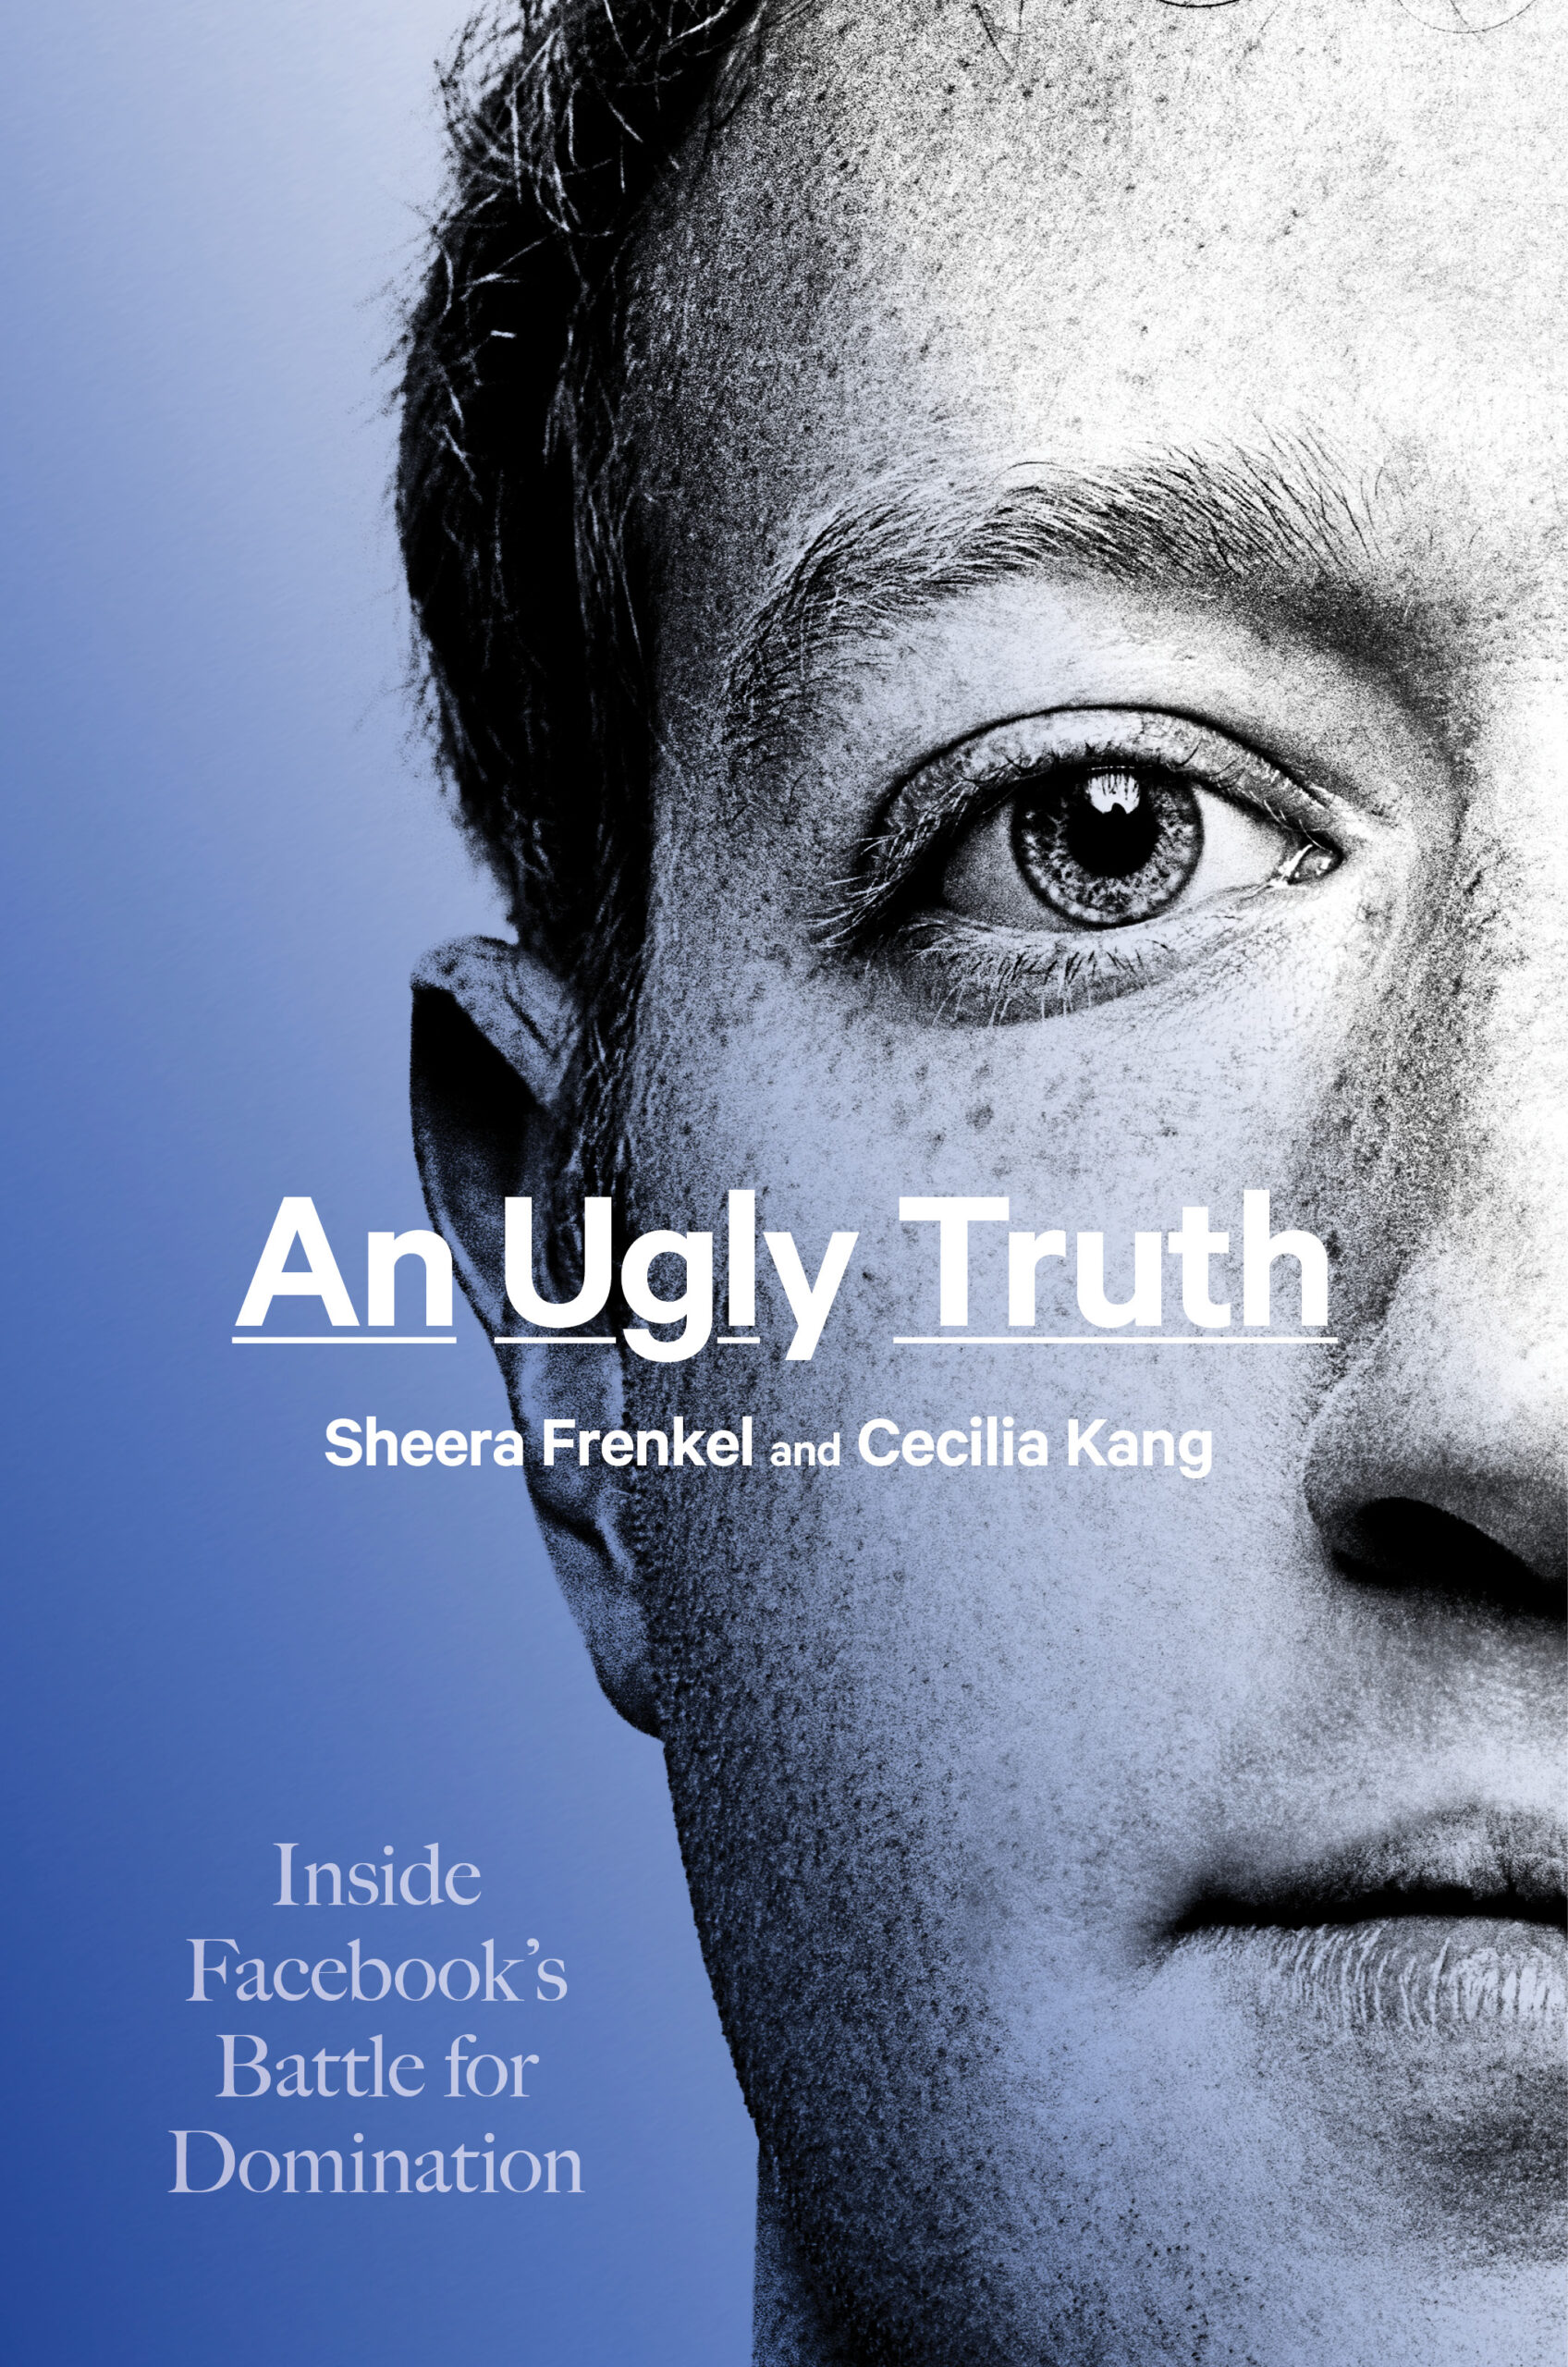 Sheera Frenkel and Cecilia Kang, An Ugly Truth: Inside Facebook's Battle for Domination